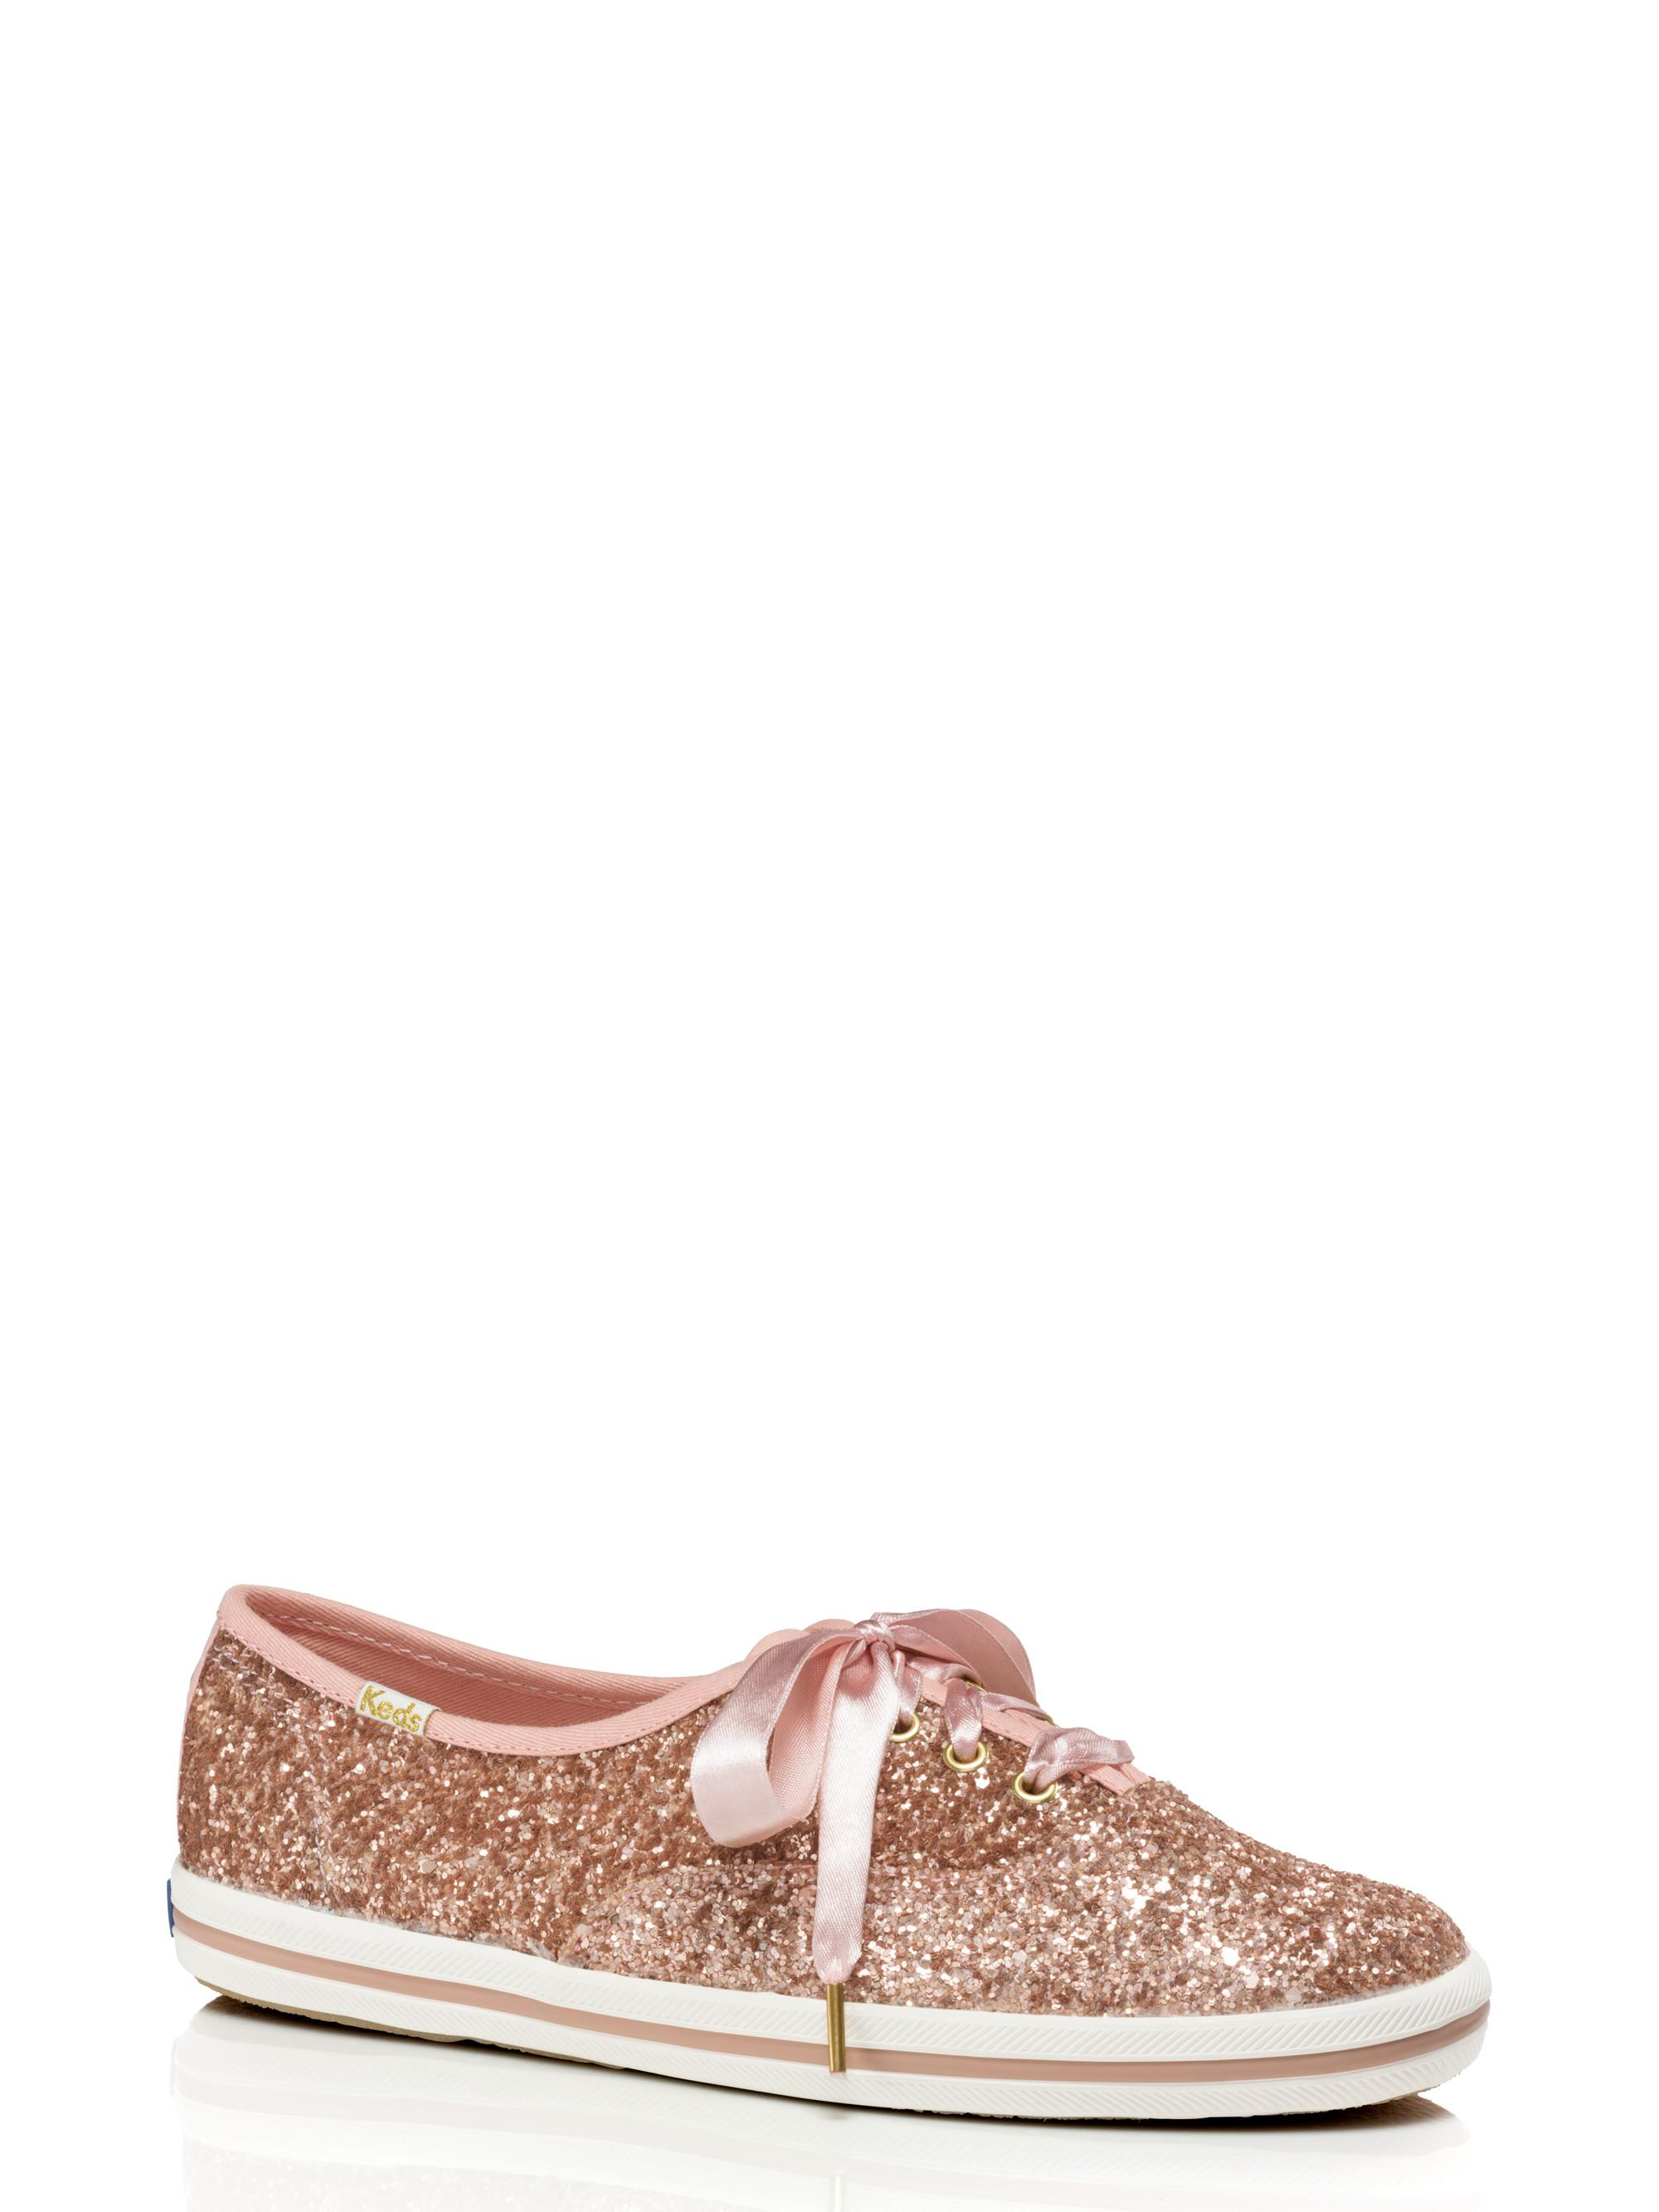 c8216dfcb8 Lyst - Kate Spade Keds X Glitter Sneakers in Pink